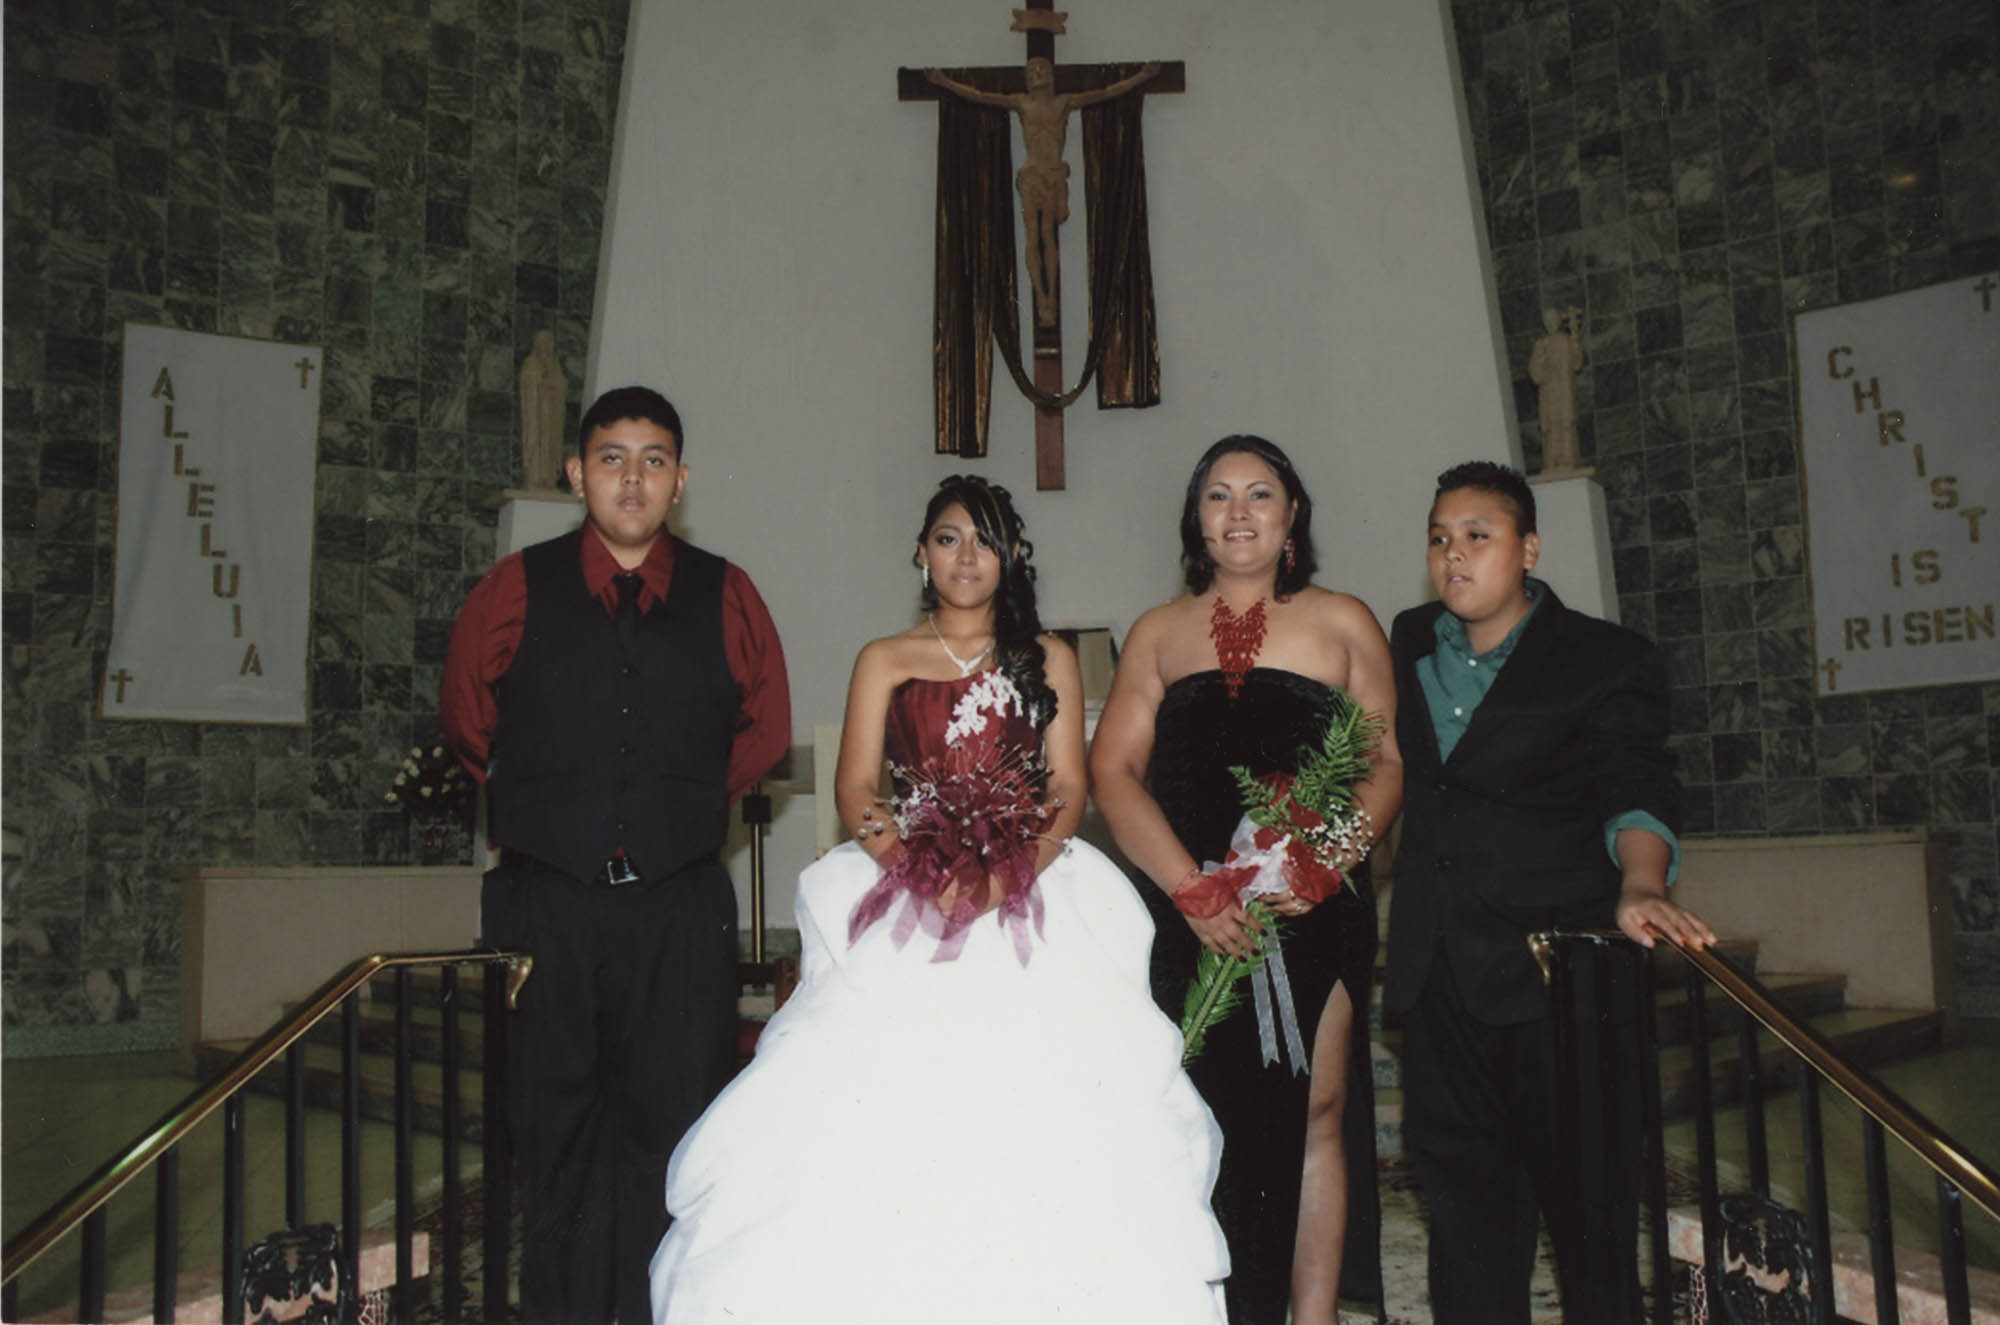 Fotografía de una quinceañera en la iglesia  /  Photograph of a Quinceañera at Church